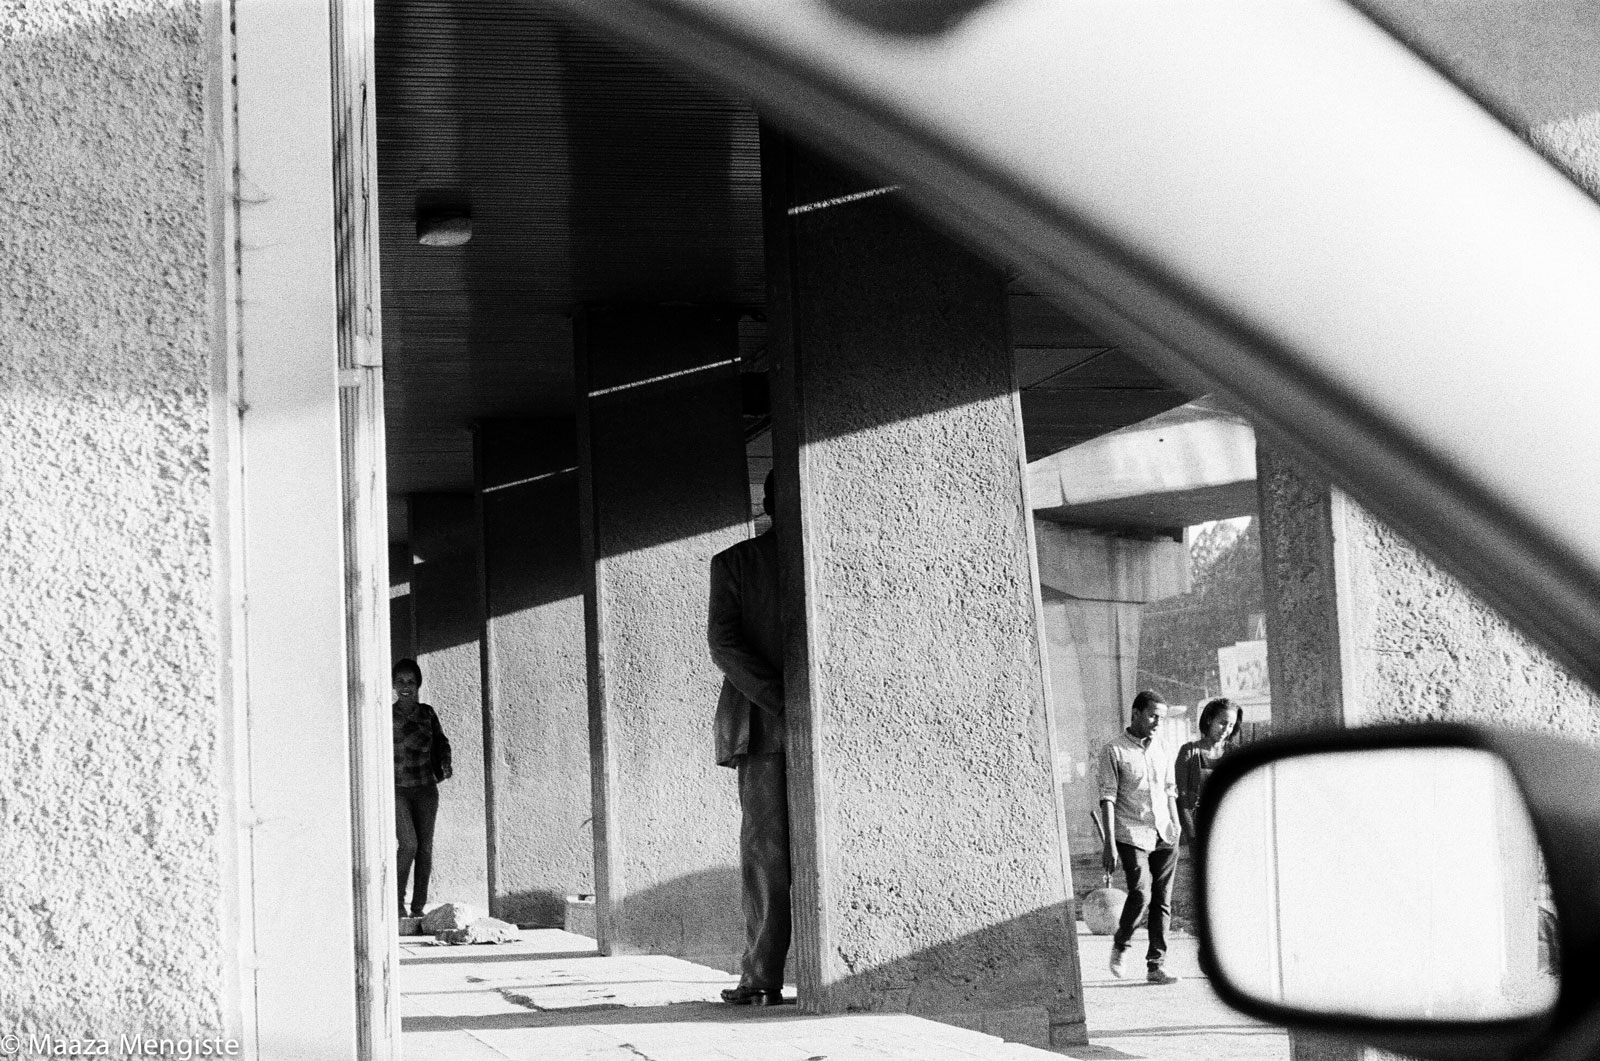 Shadows, columns, and people seen through the window of a car